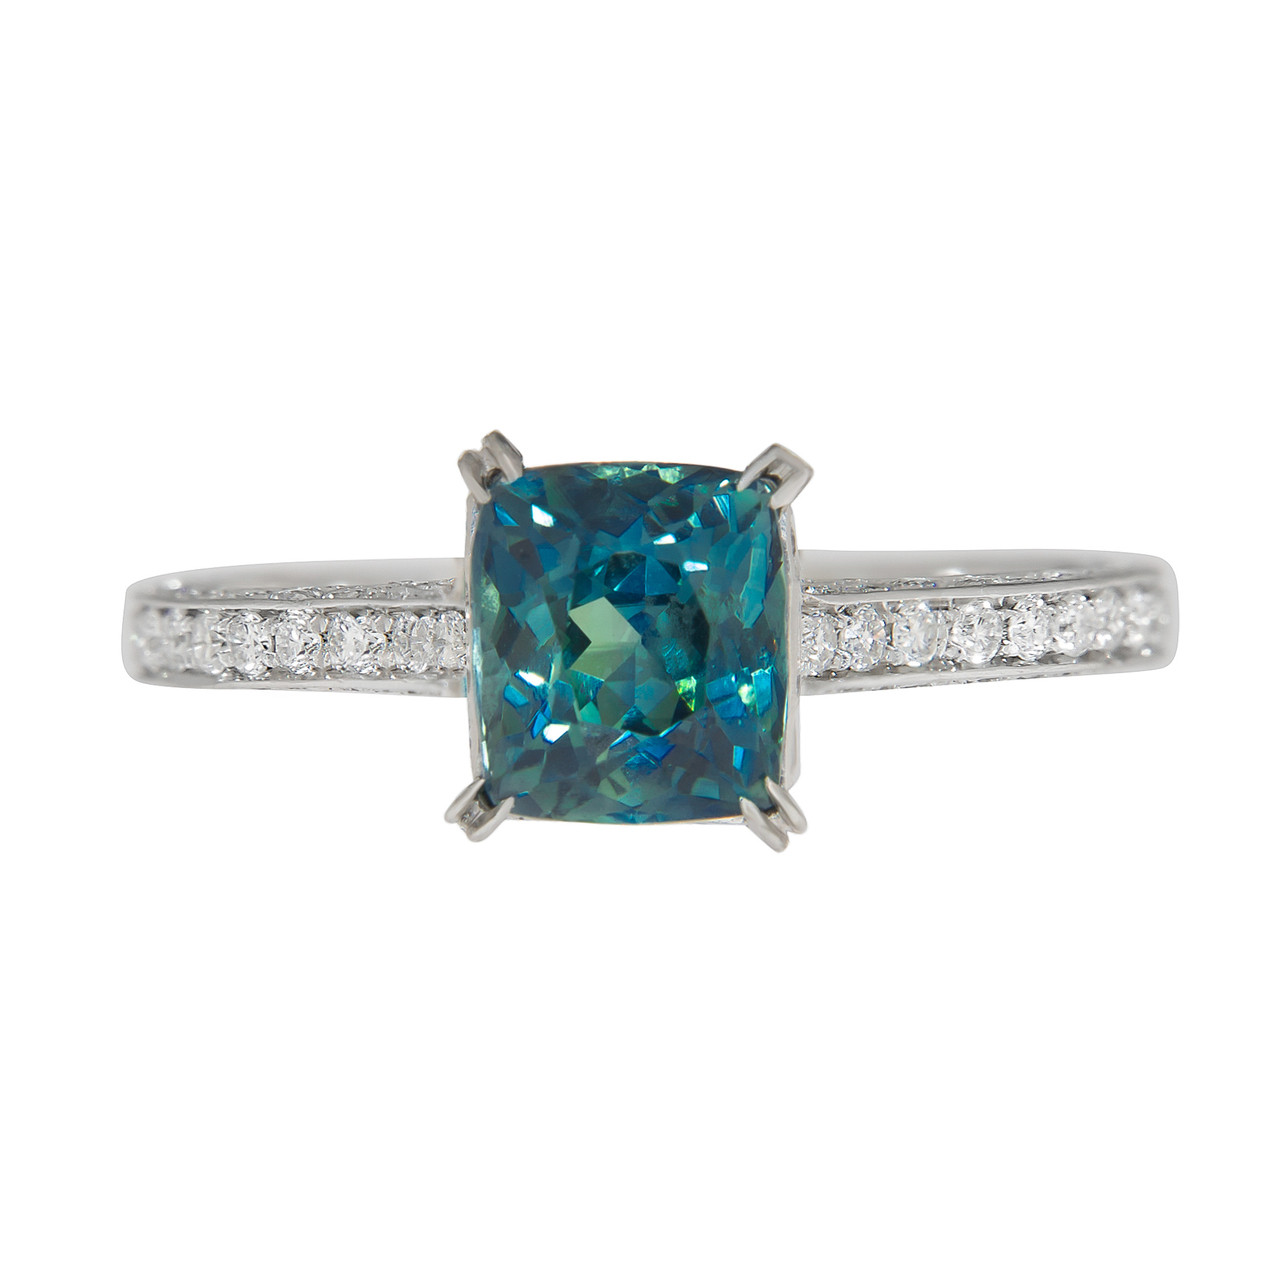 df0151a43d302 Greenish Blue Sapphire Engagement Ring